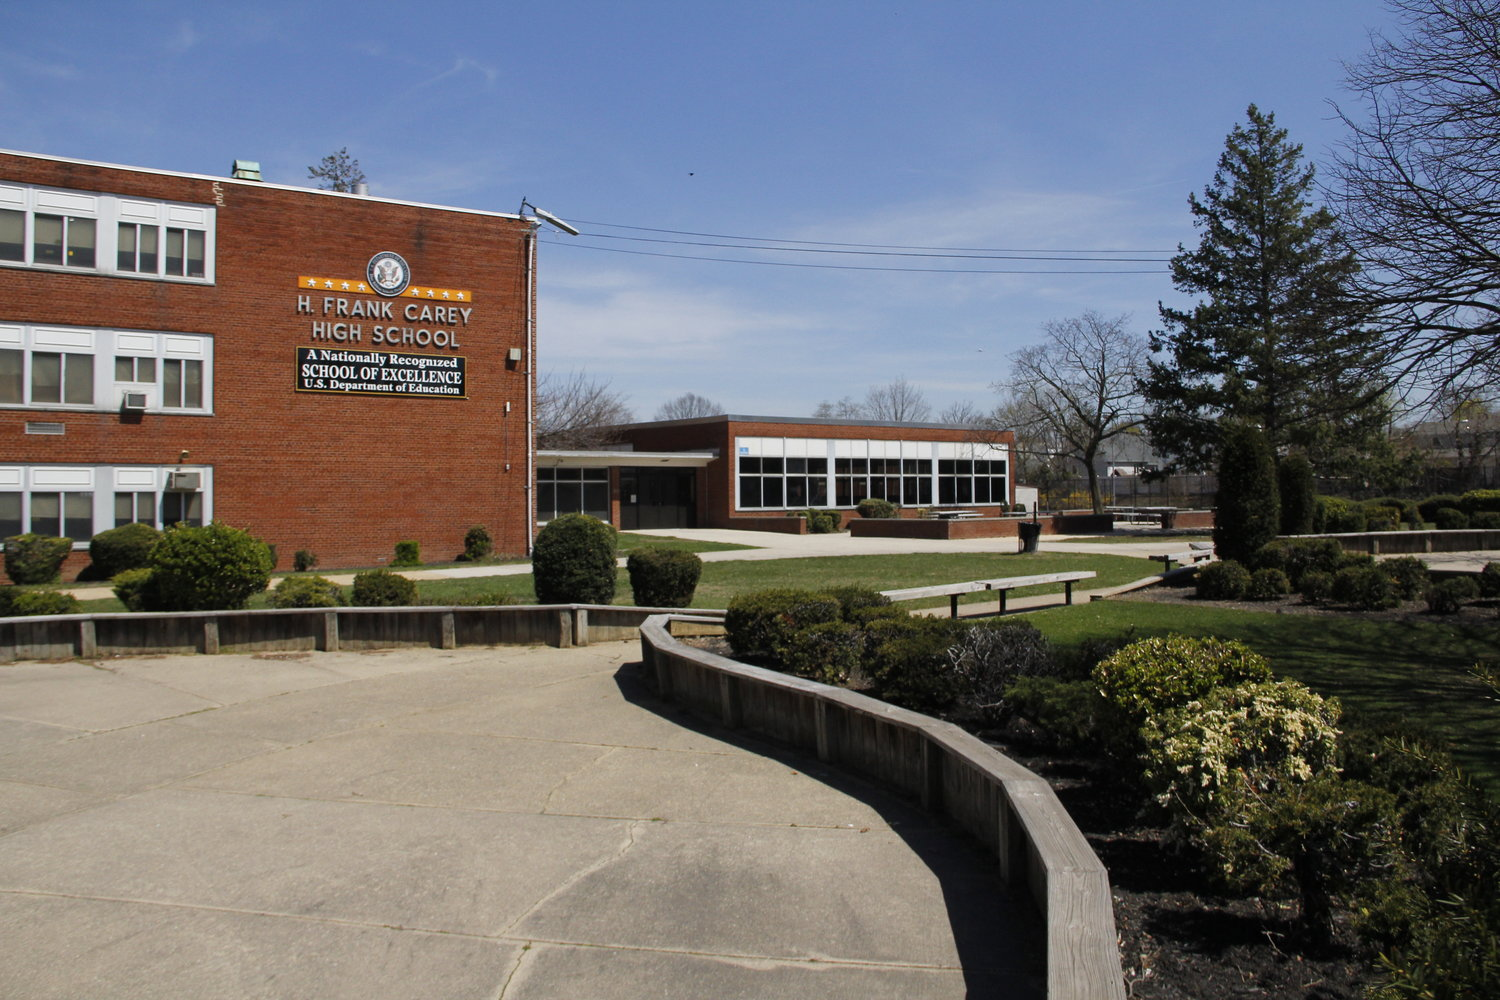 Schools in the Sewanhaka Central High School District will remain open during the district's scheduled Spring Break.